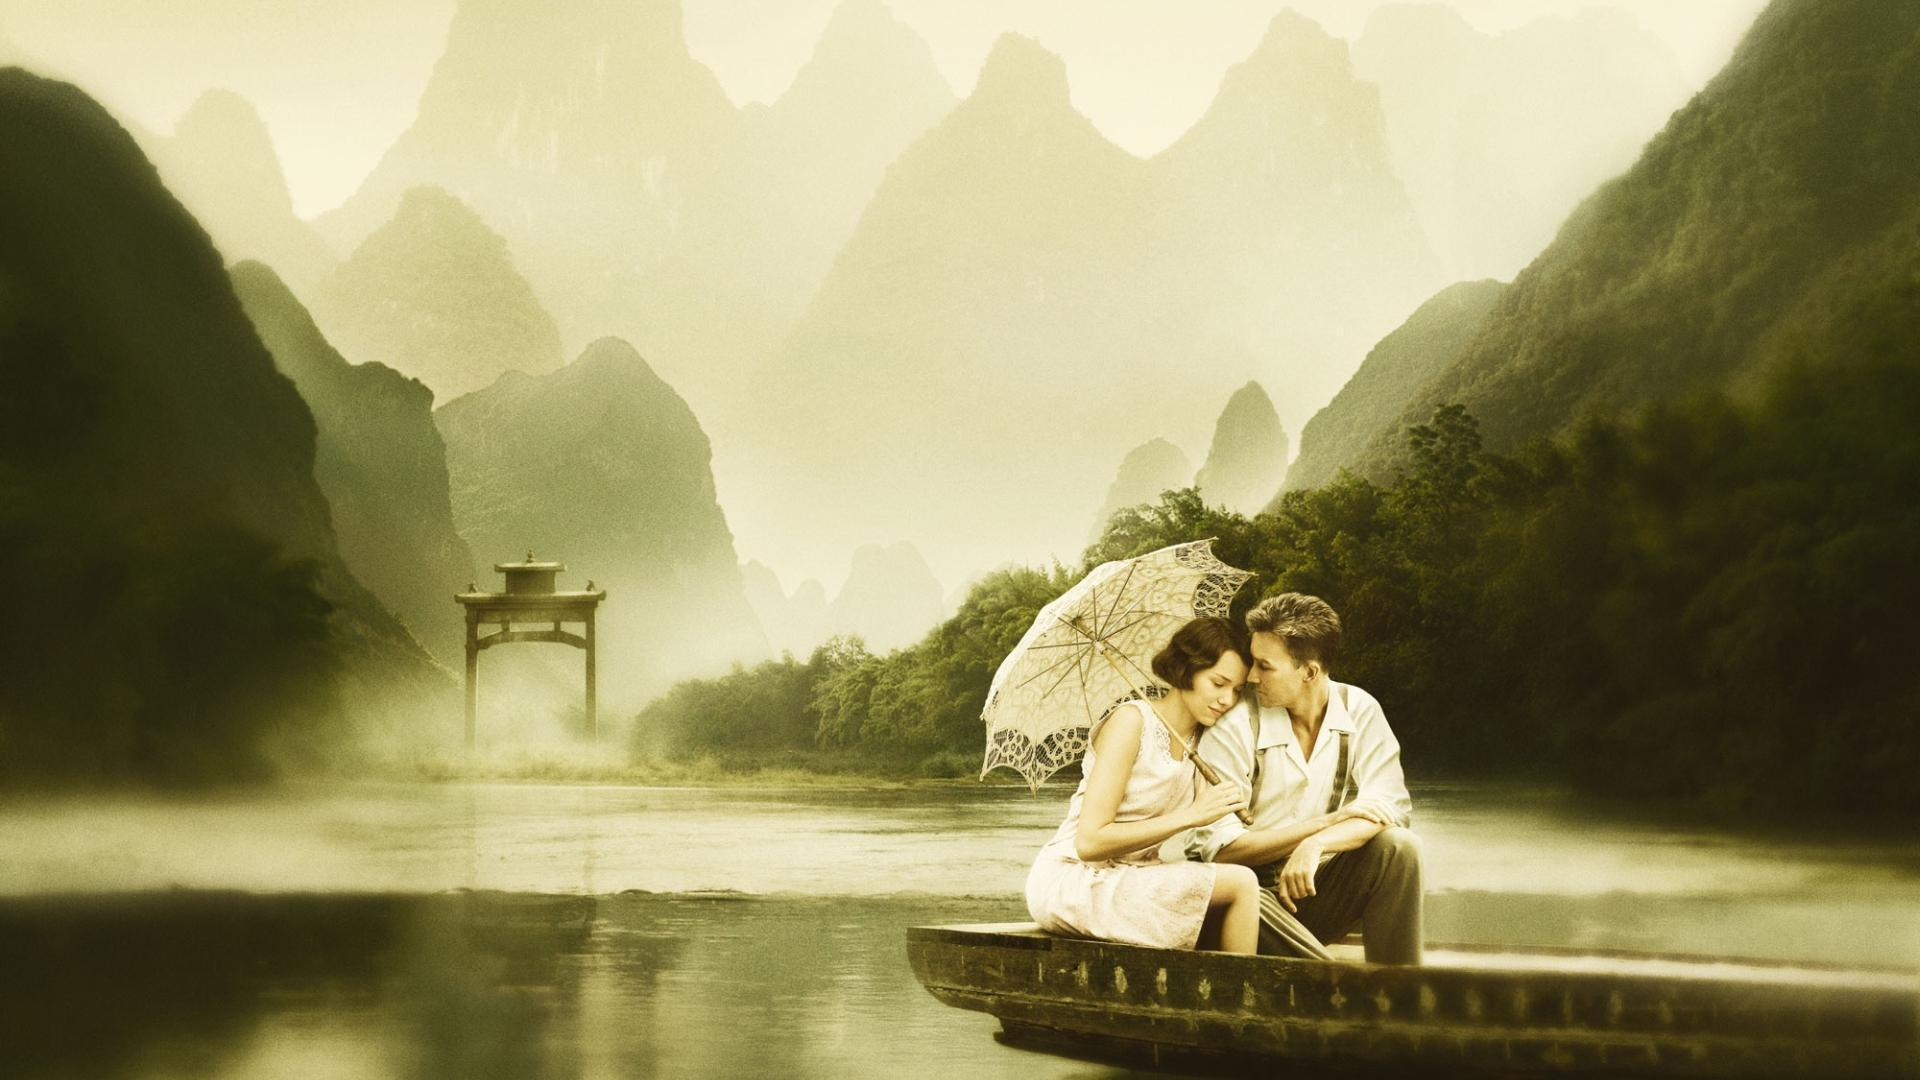 Download Love Romantic Wallpapers Group (59+)